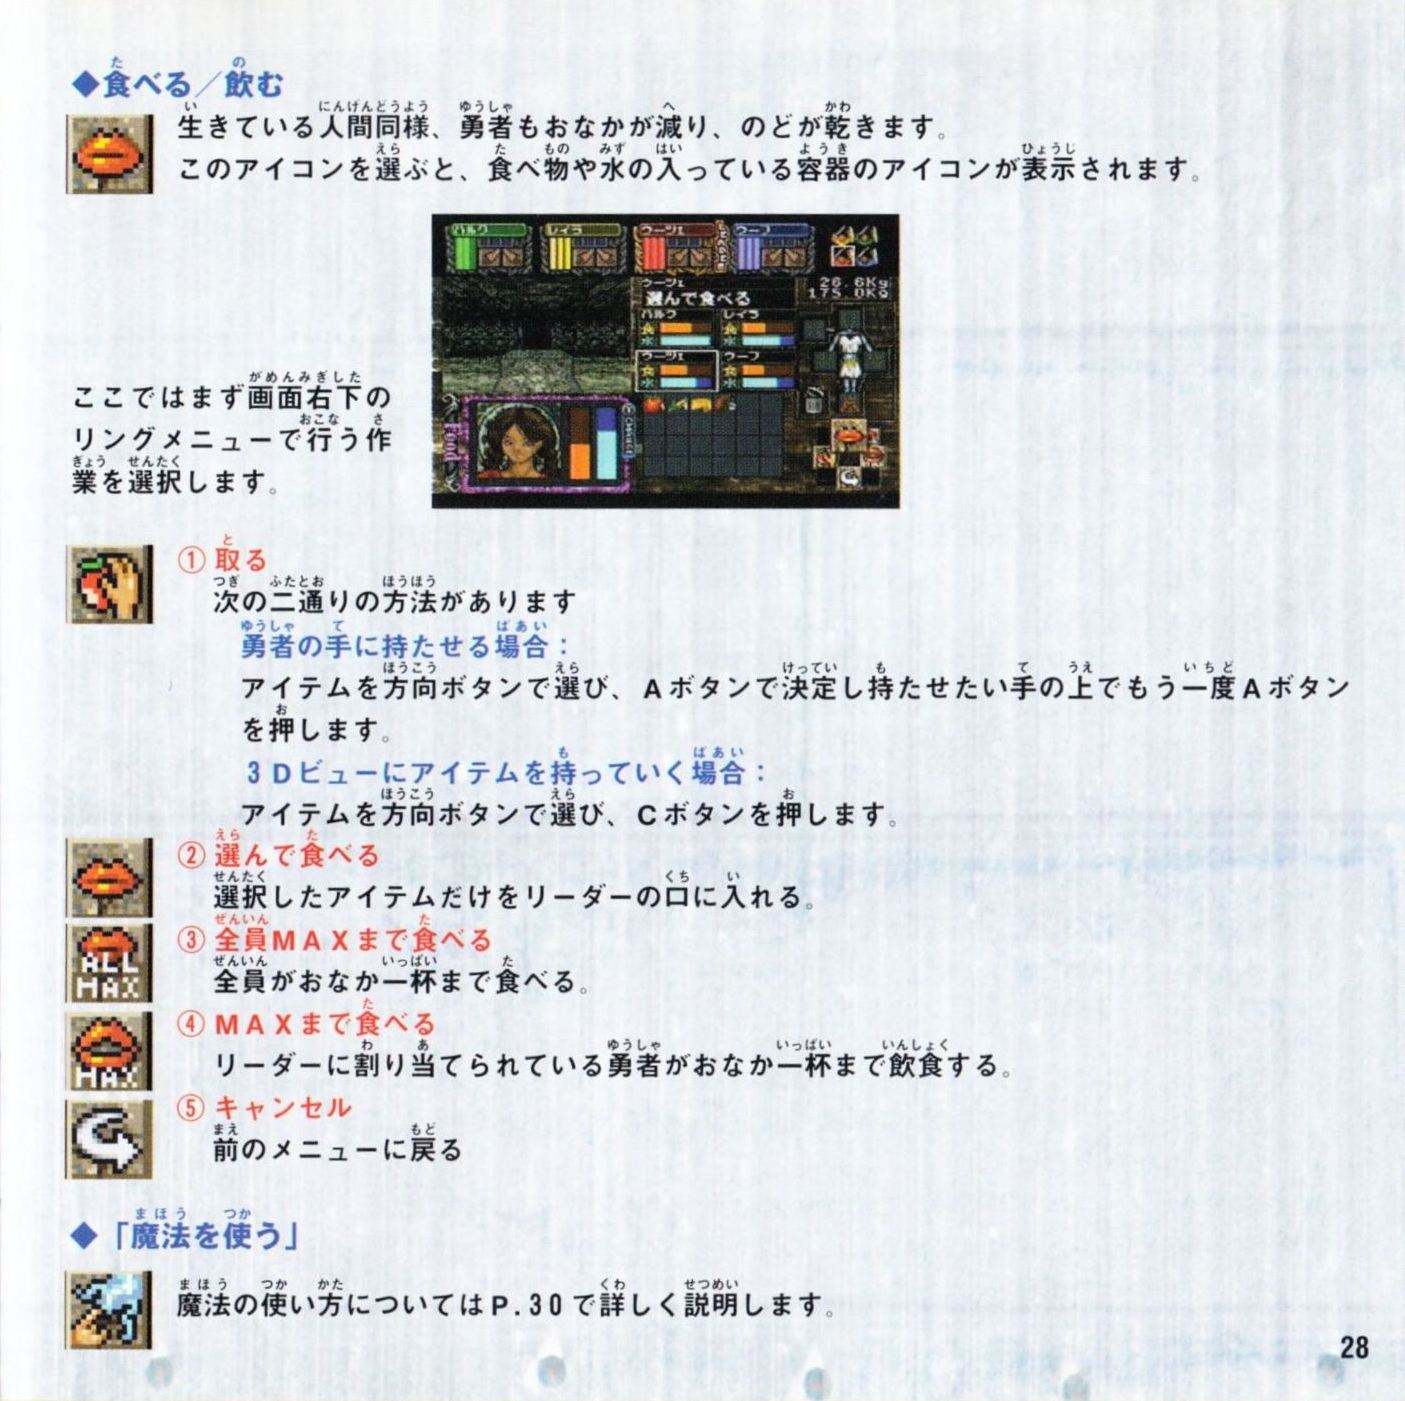 Game - Dungeon Master Nexus - JP - Sega Saturn - Booklet - Page 029 - Scan